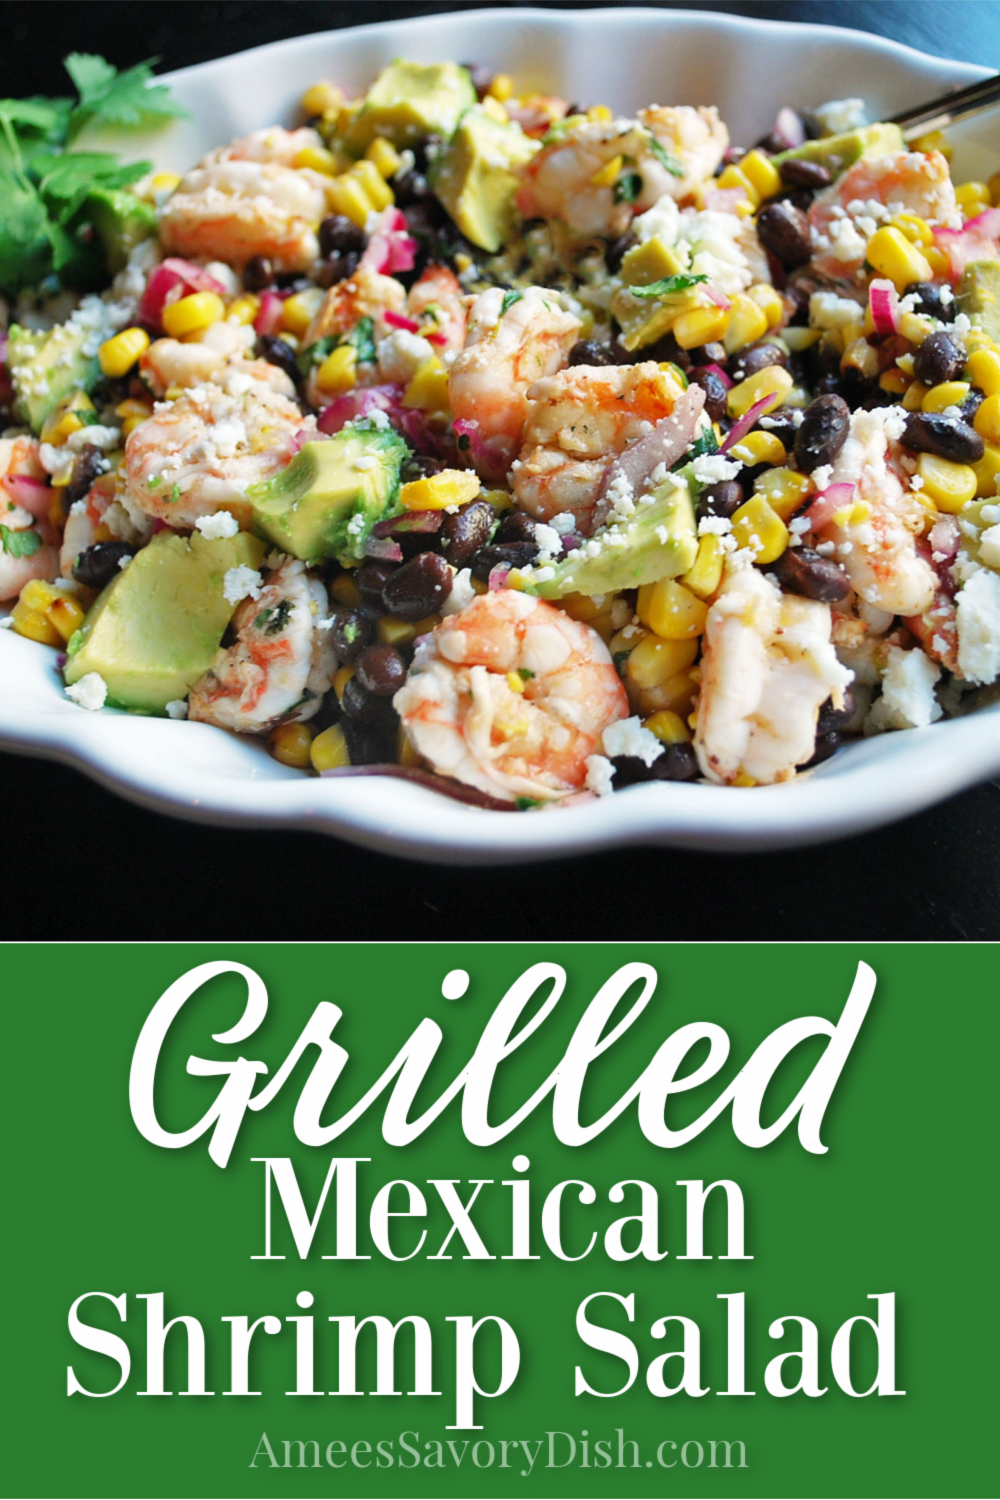 A Mexican-inspired salad recipe made with grilled shrimp, corn, black beans, avocado, and crumbled Cojita cheese. #shrimpsalad #grilledshrimp #mexicanrecipe #mexicansalad #shrimprecipe #glutenfree via @Ameessavorydish